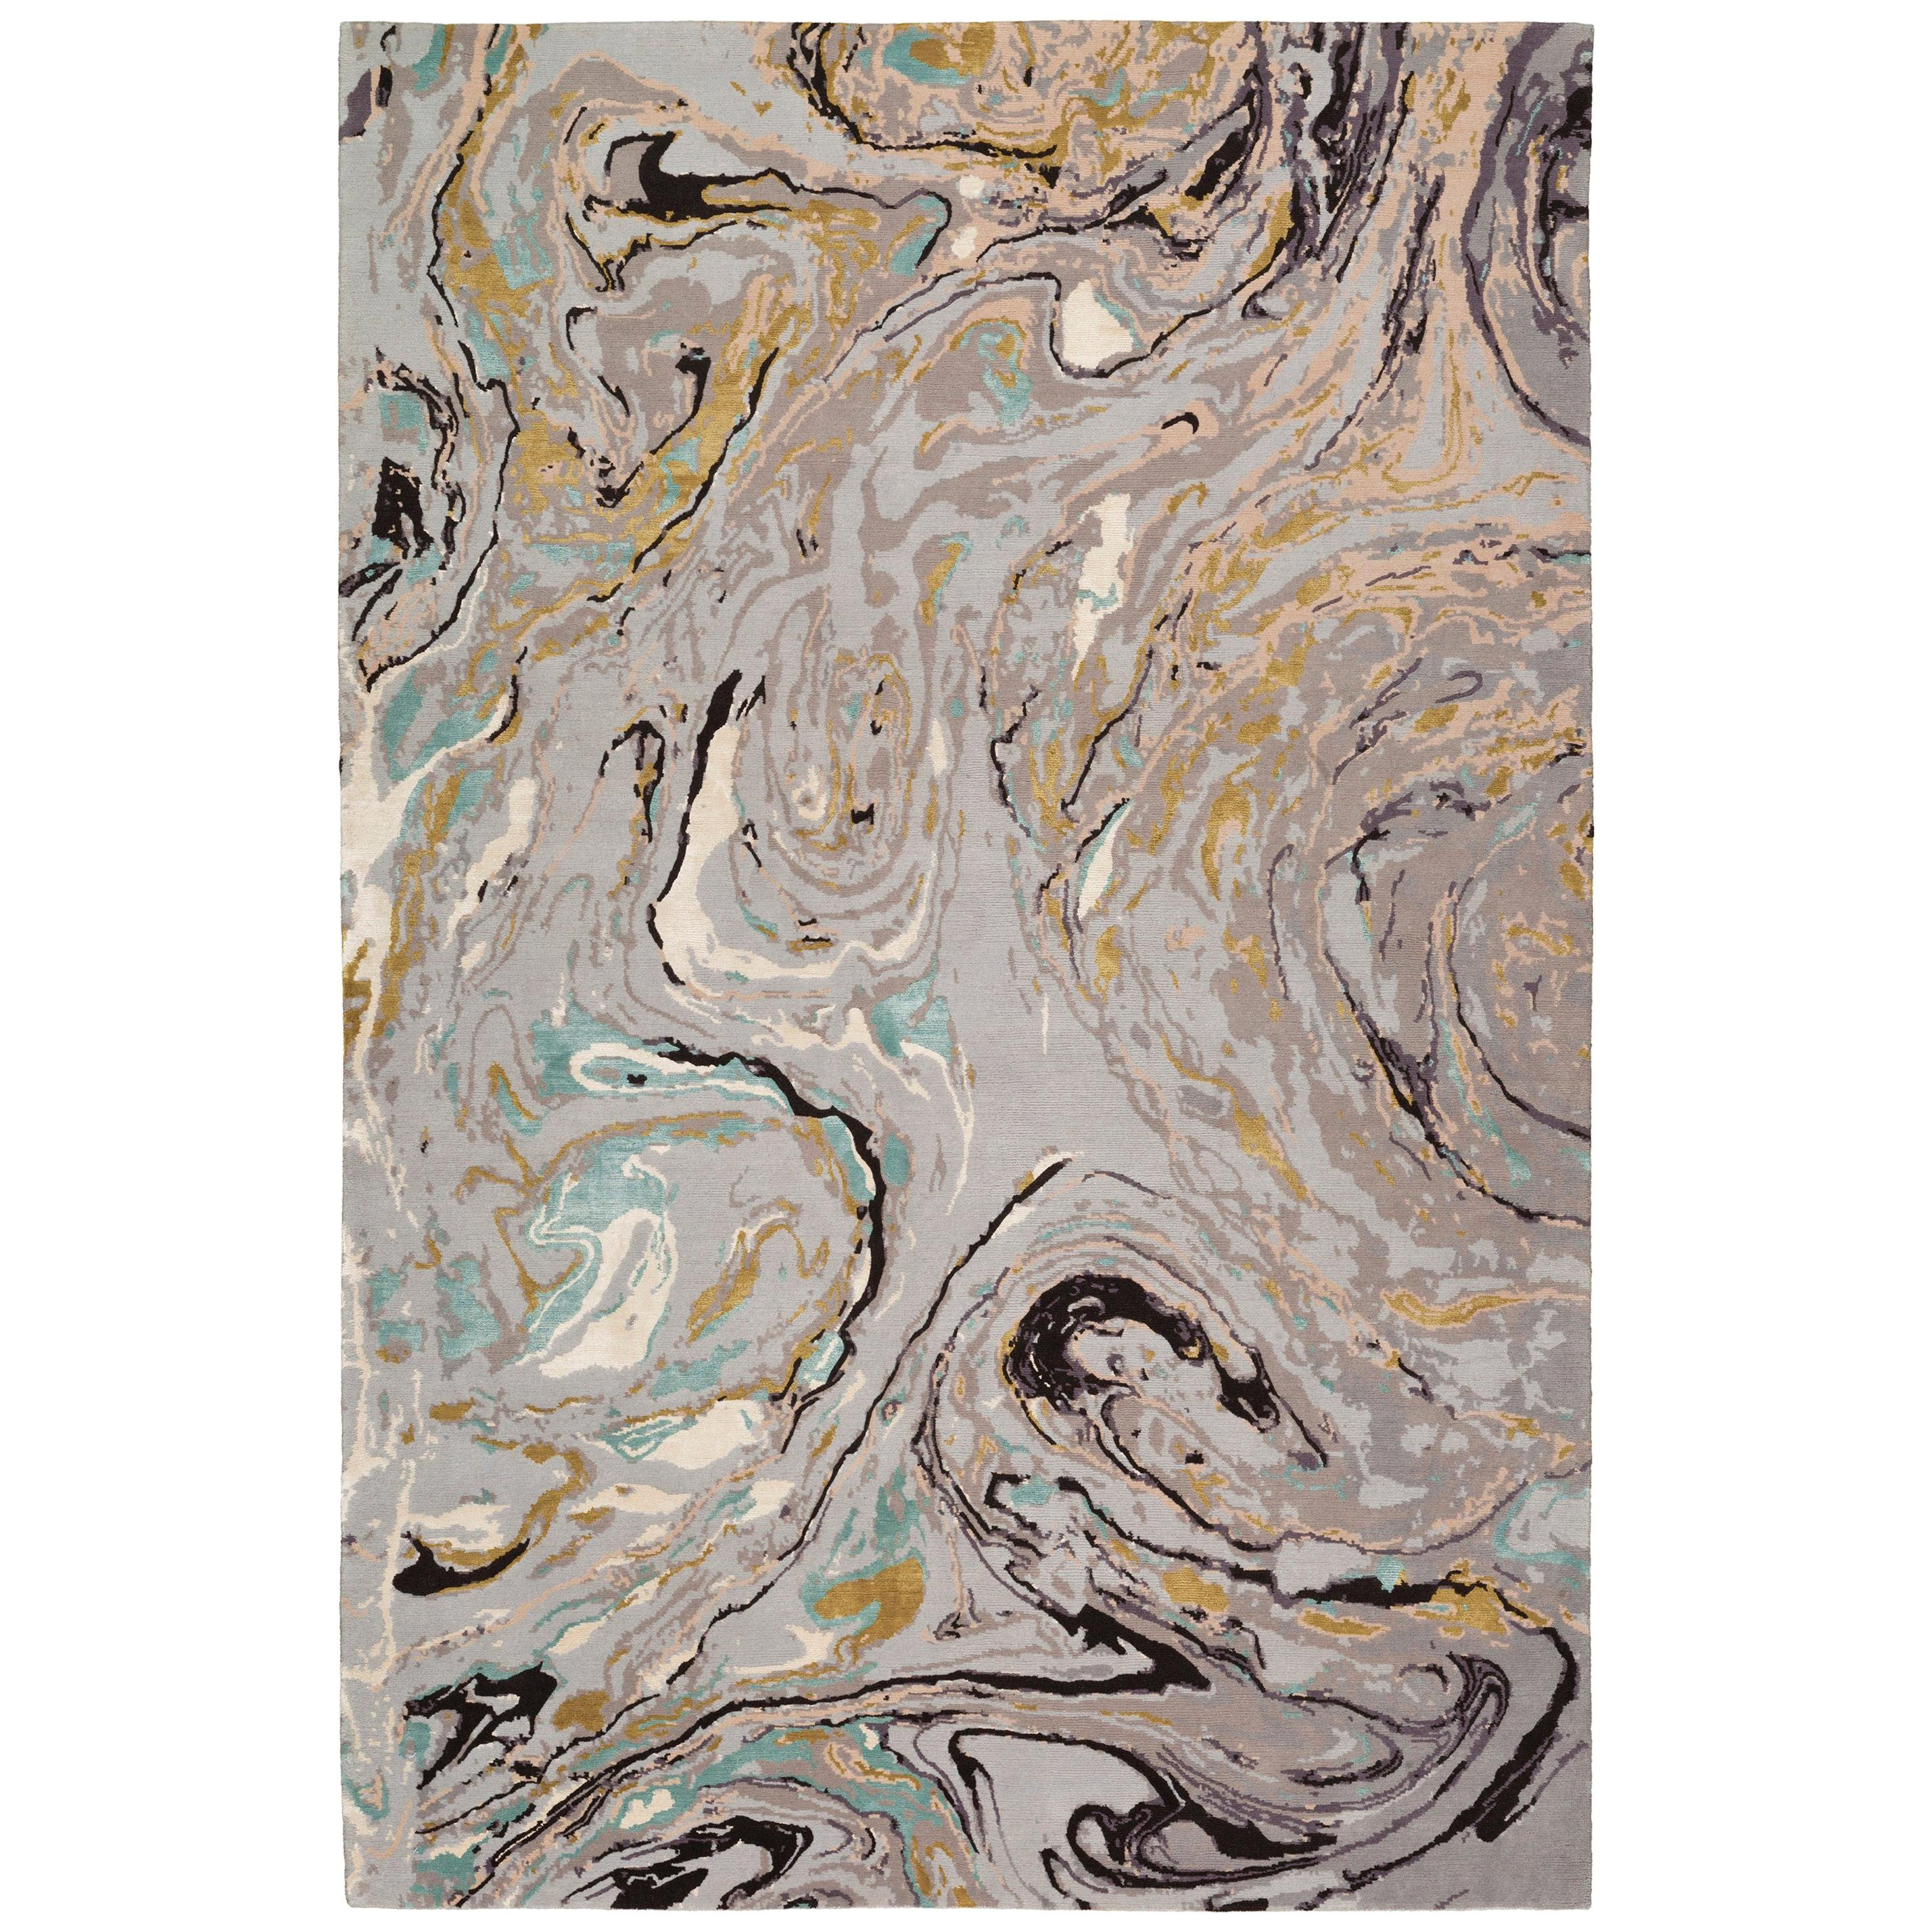 Marble Hand Knotted 10x8 Rug in Wool and Silk by Rodarte